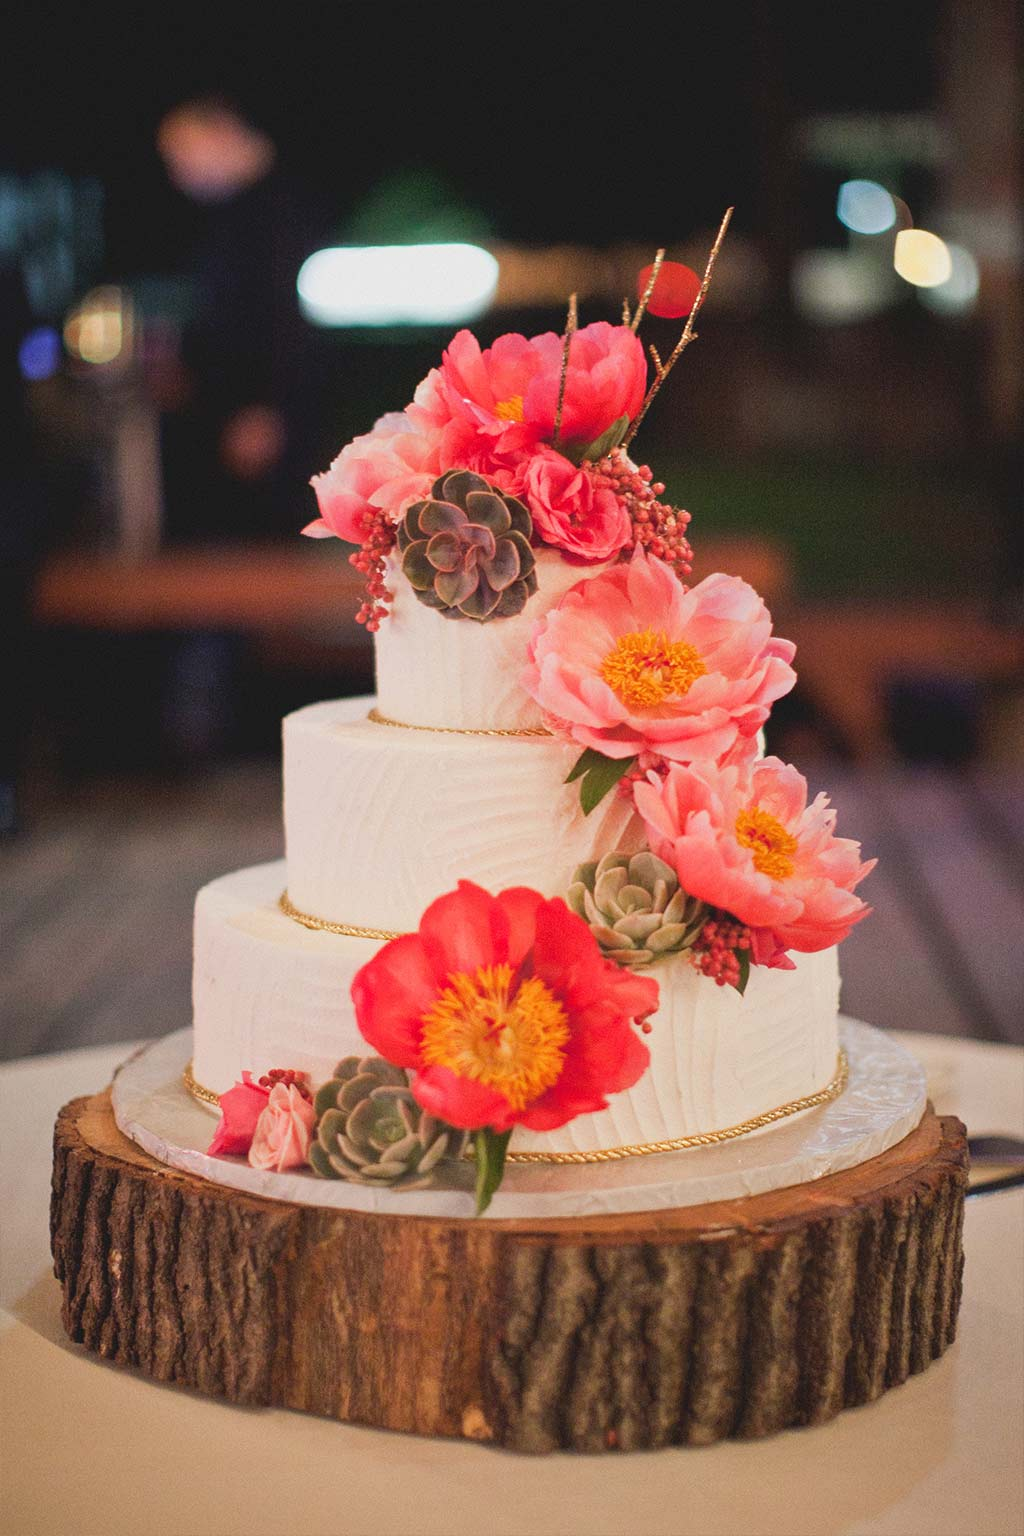 Dallas Affaires Wedding Cake on Tree Stump Stand